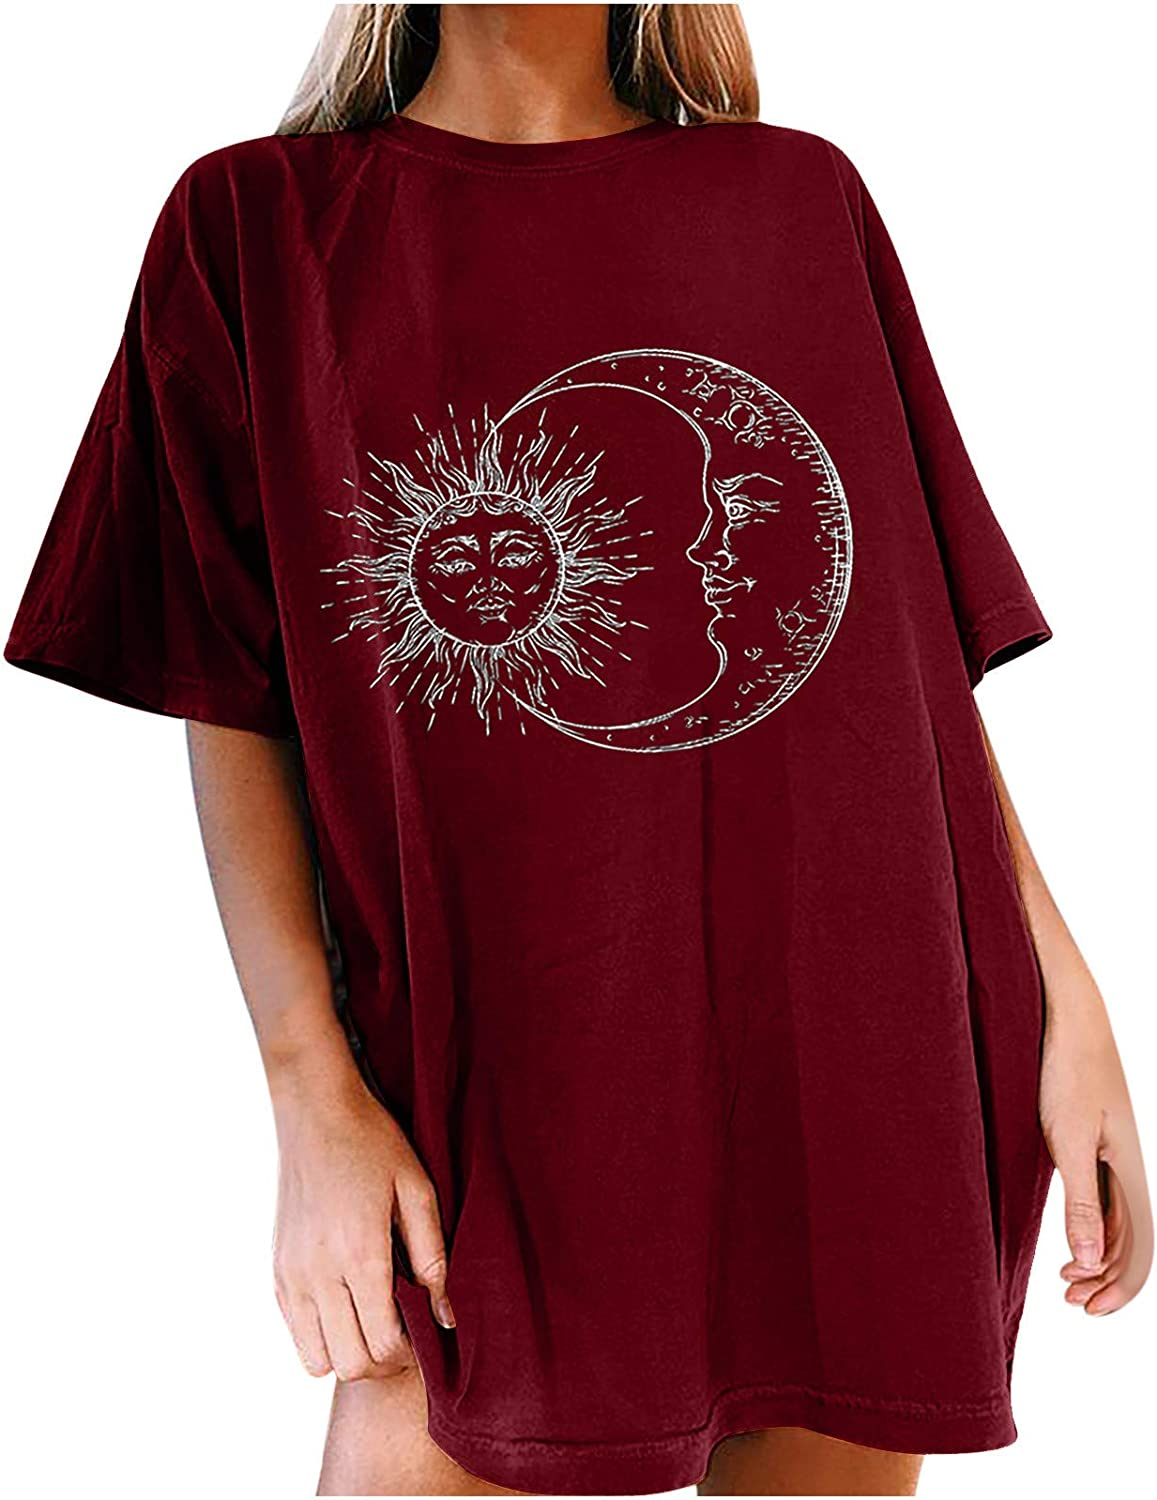 Vintage Graphic Tees for Women Sun and Moon Print Tie Dye Casual Short Sleeve Crewneck Oversized T Shirts Tops